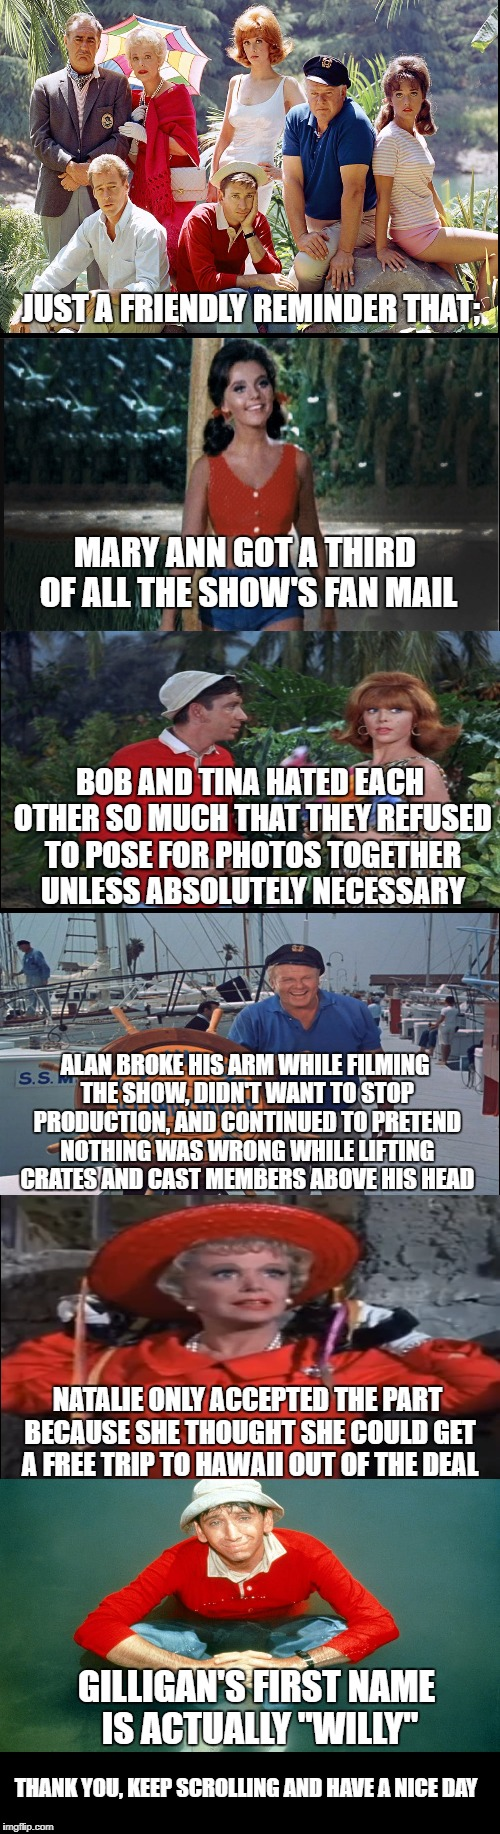 Some fun facts for Gilligan's Island week, a DrSarcasm event. | JUST A FRIENDLY REMINDER THAT; MARY ANN GOT A THIRD OF ALL THE SHOW'S FAN MAIL BOB AND TINA HATED EACH OTHER SO MUCH THAT THEY REFUSED TO PO | image tagged in gilligan's island,gilligans island week | made w/ Imgflip meme maker